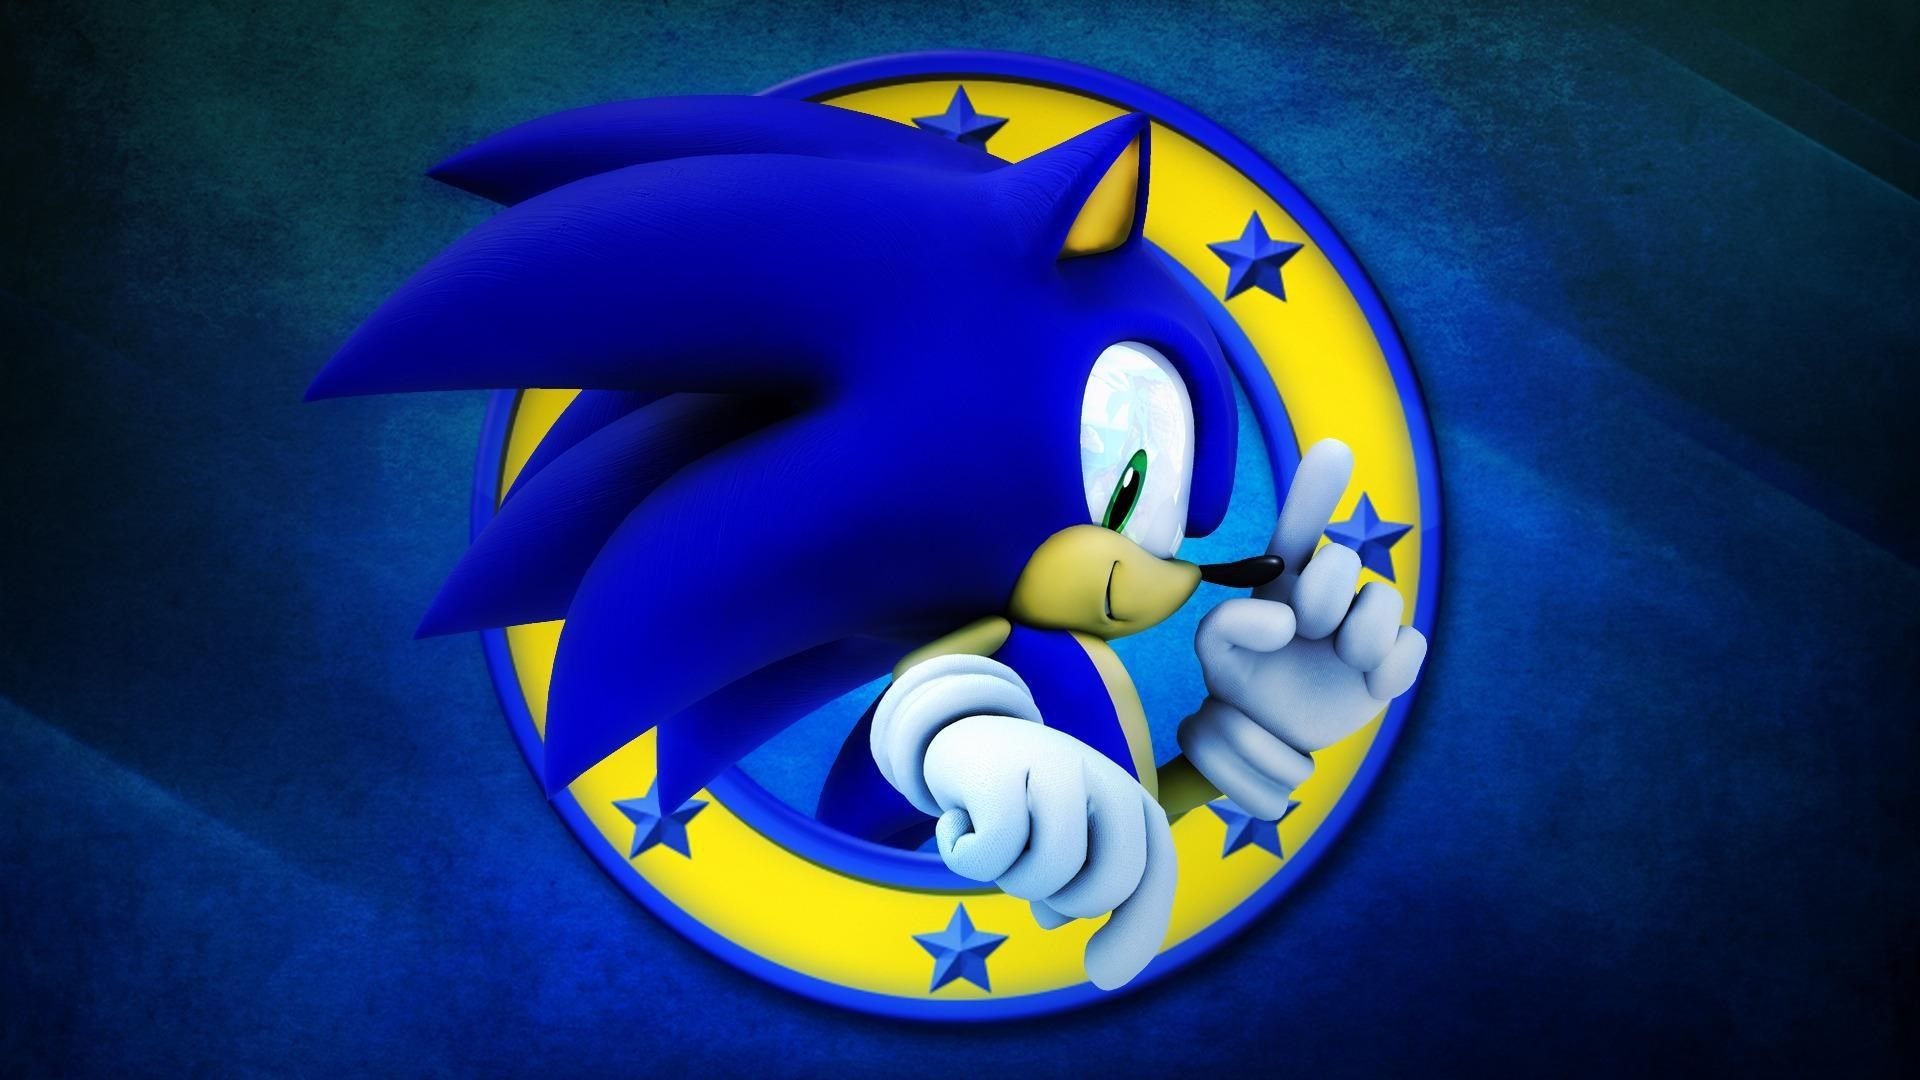 the sonic the hedgehog hedgehog games backgrounds